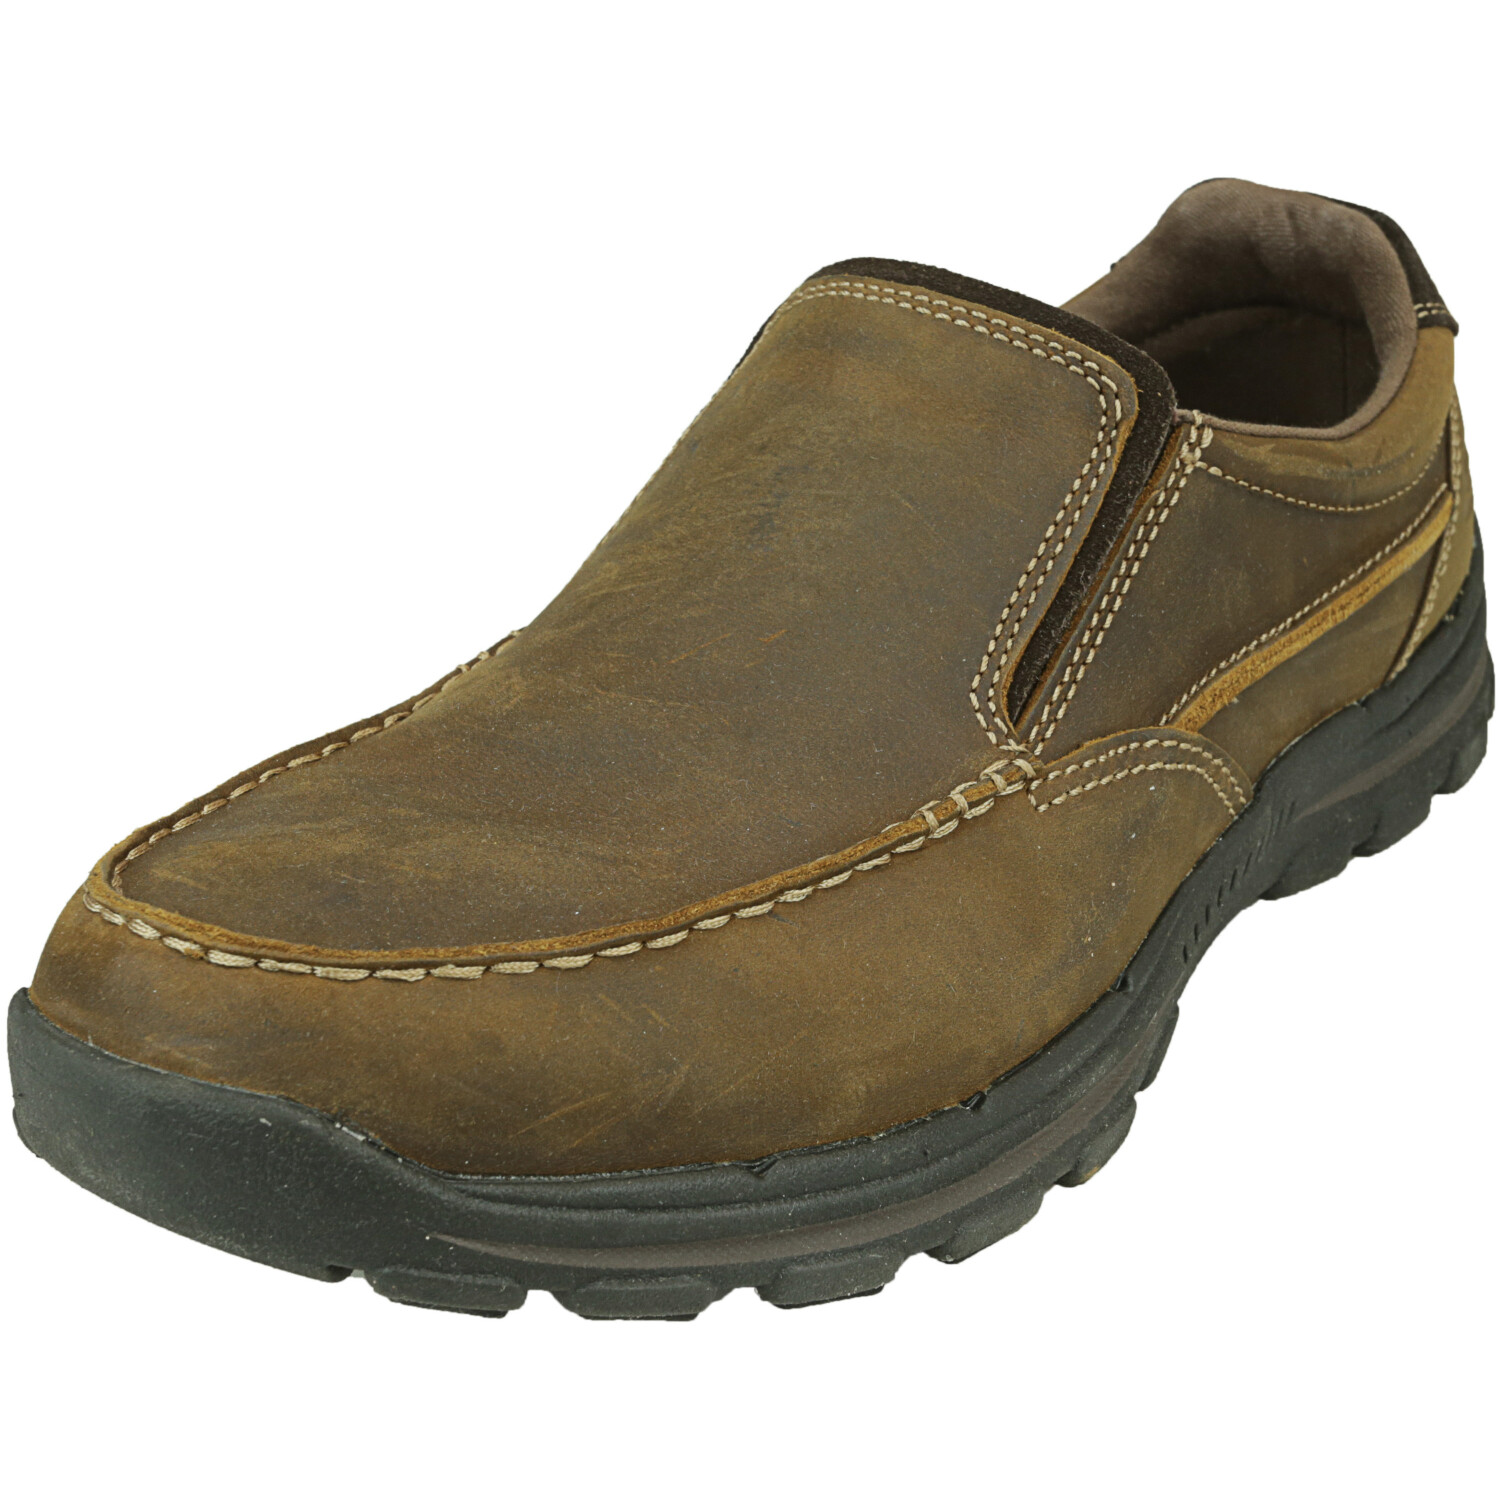 Skechers Men's Bravers - Rayland Dark Brown Ankle-High Leather Slip-On Shoes 12W